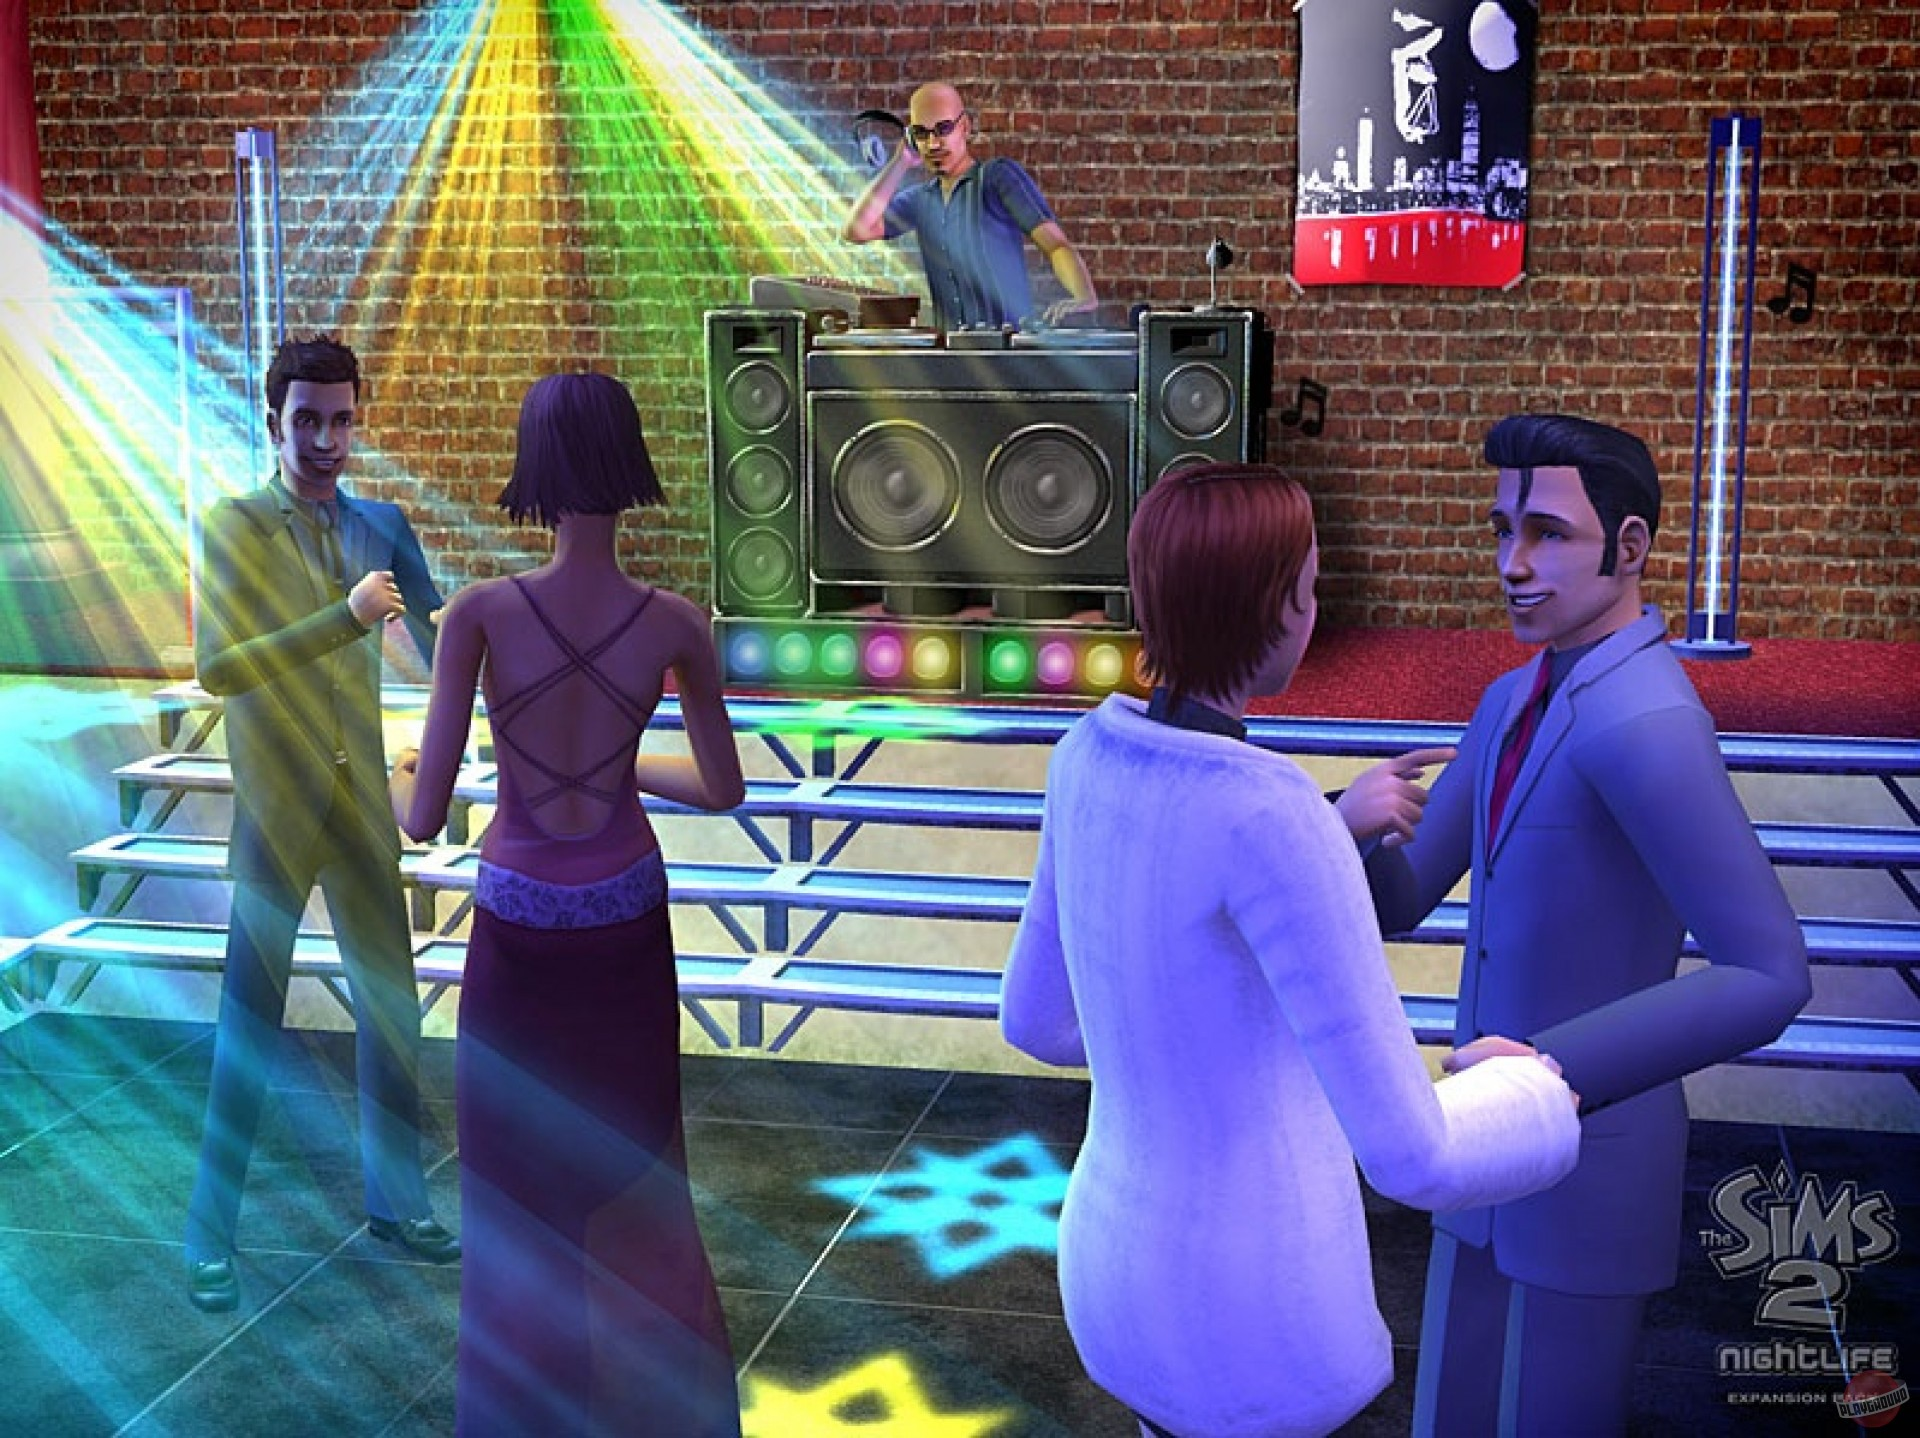 The sims2 nightlife nude patch pron tube